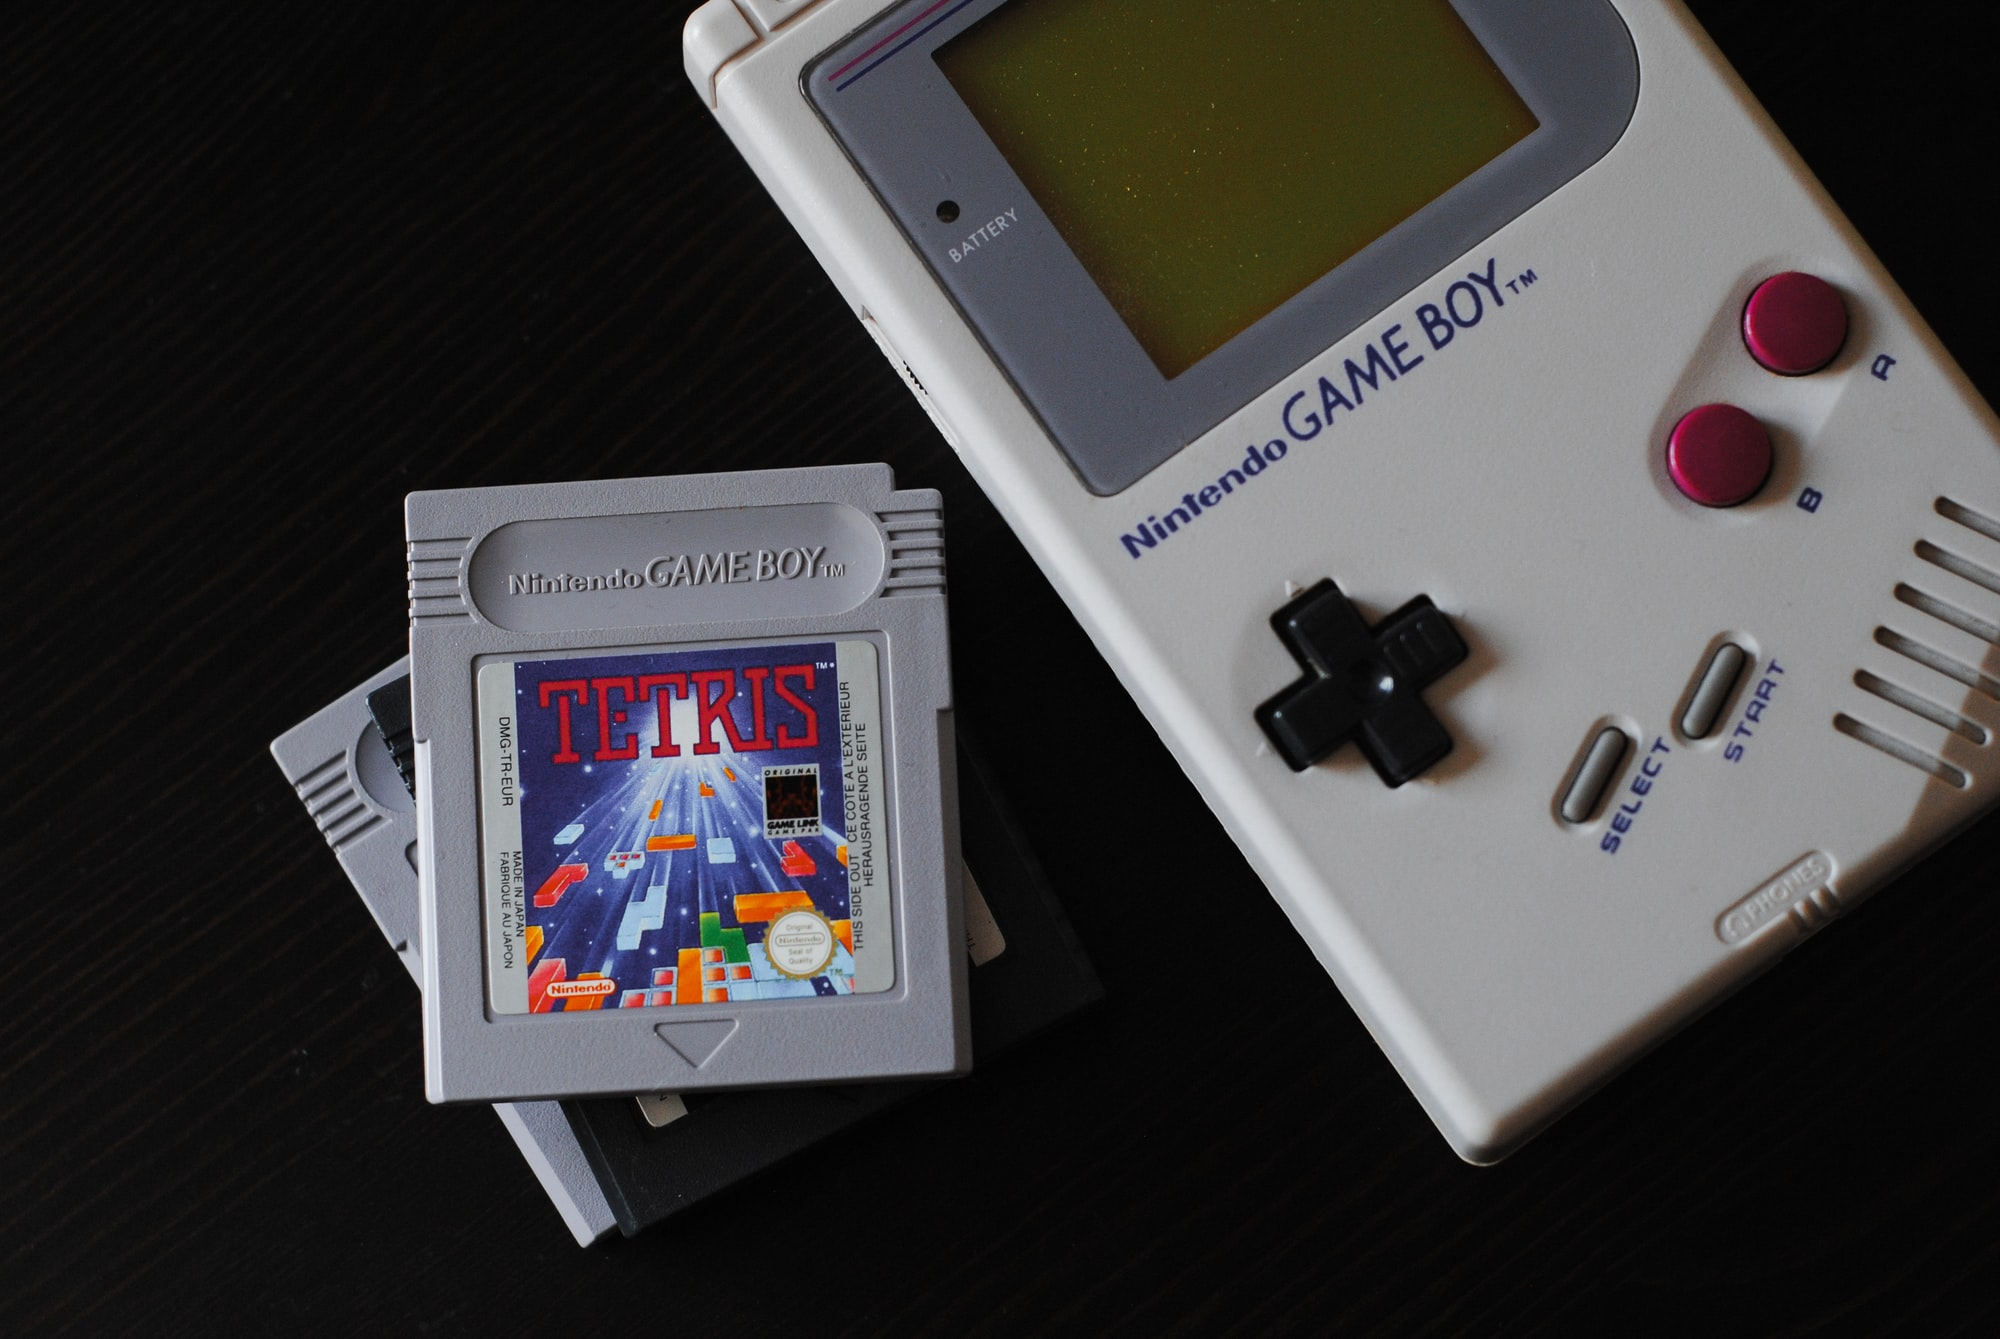 30 years of the Nintendo Game Boy.